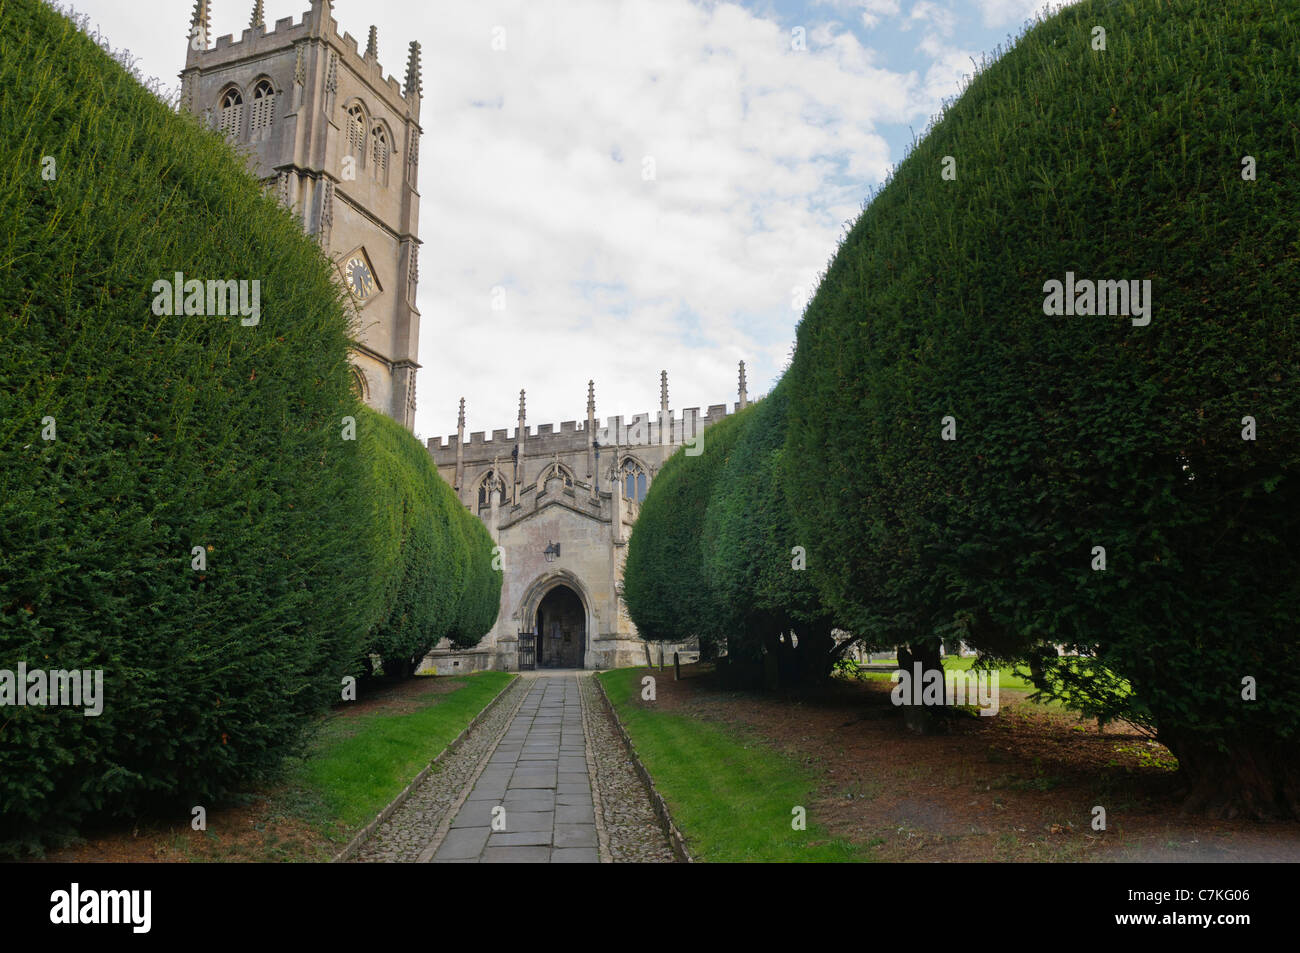 Yew tree lined path to St Mary's Church, Calne, Wiltshire. - Stock Image